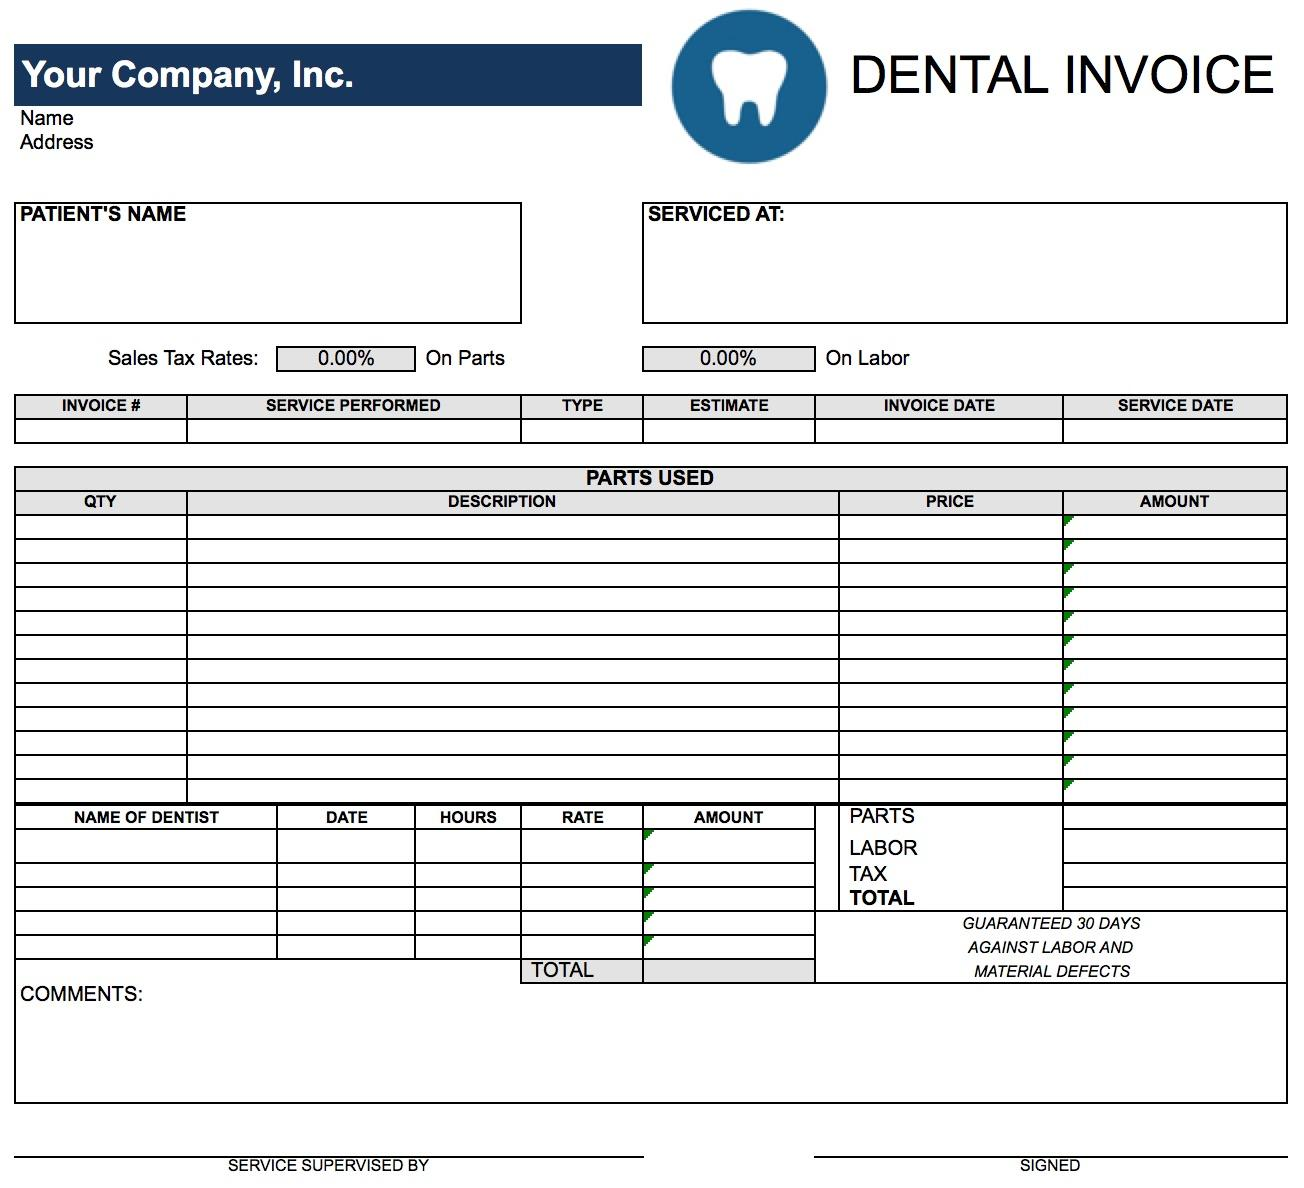 Dental Invoice Template Excel